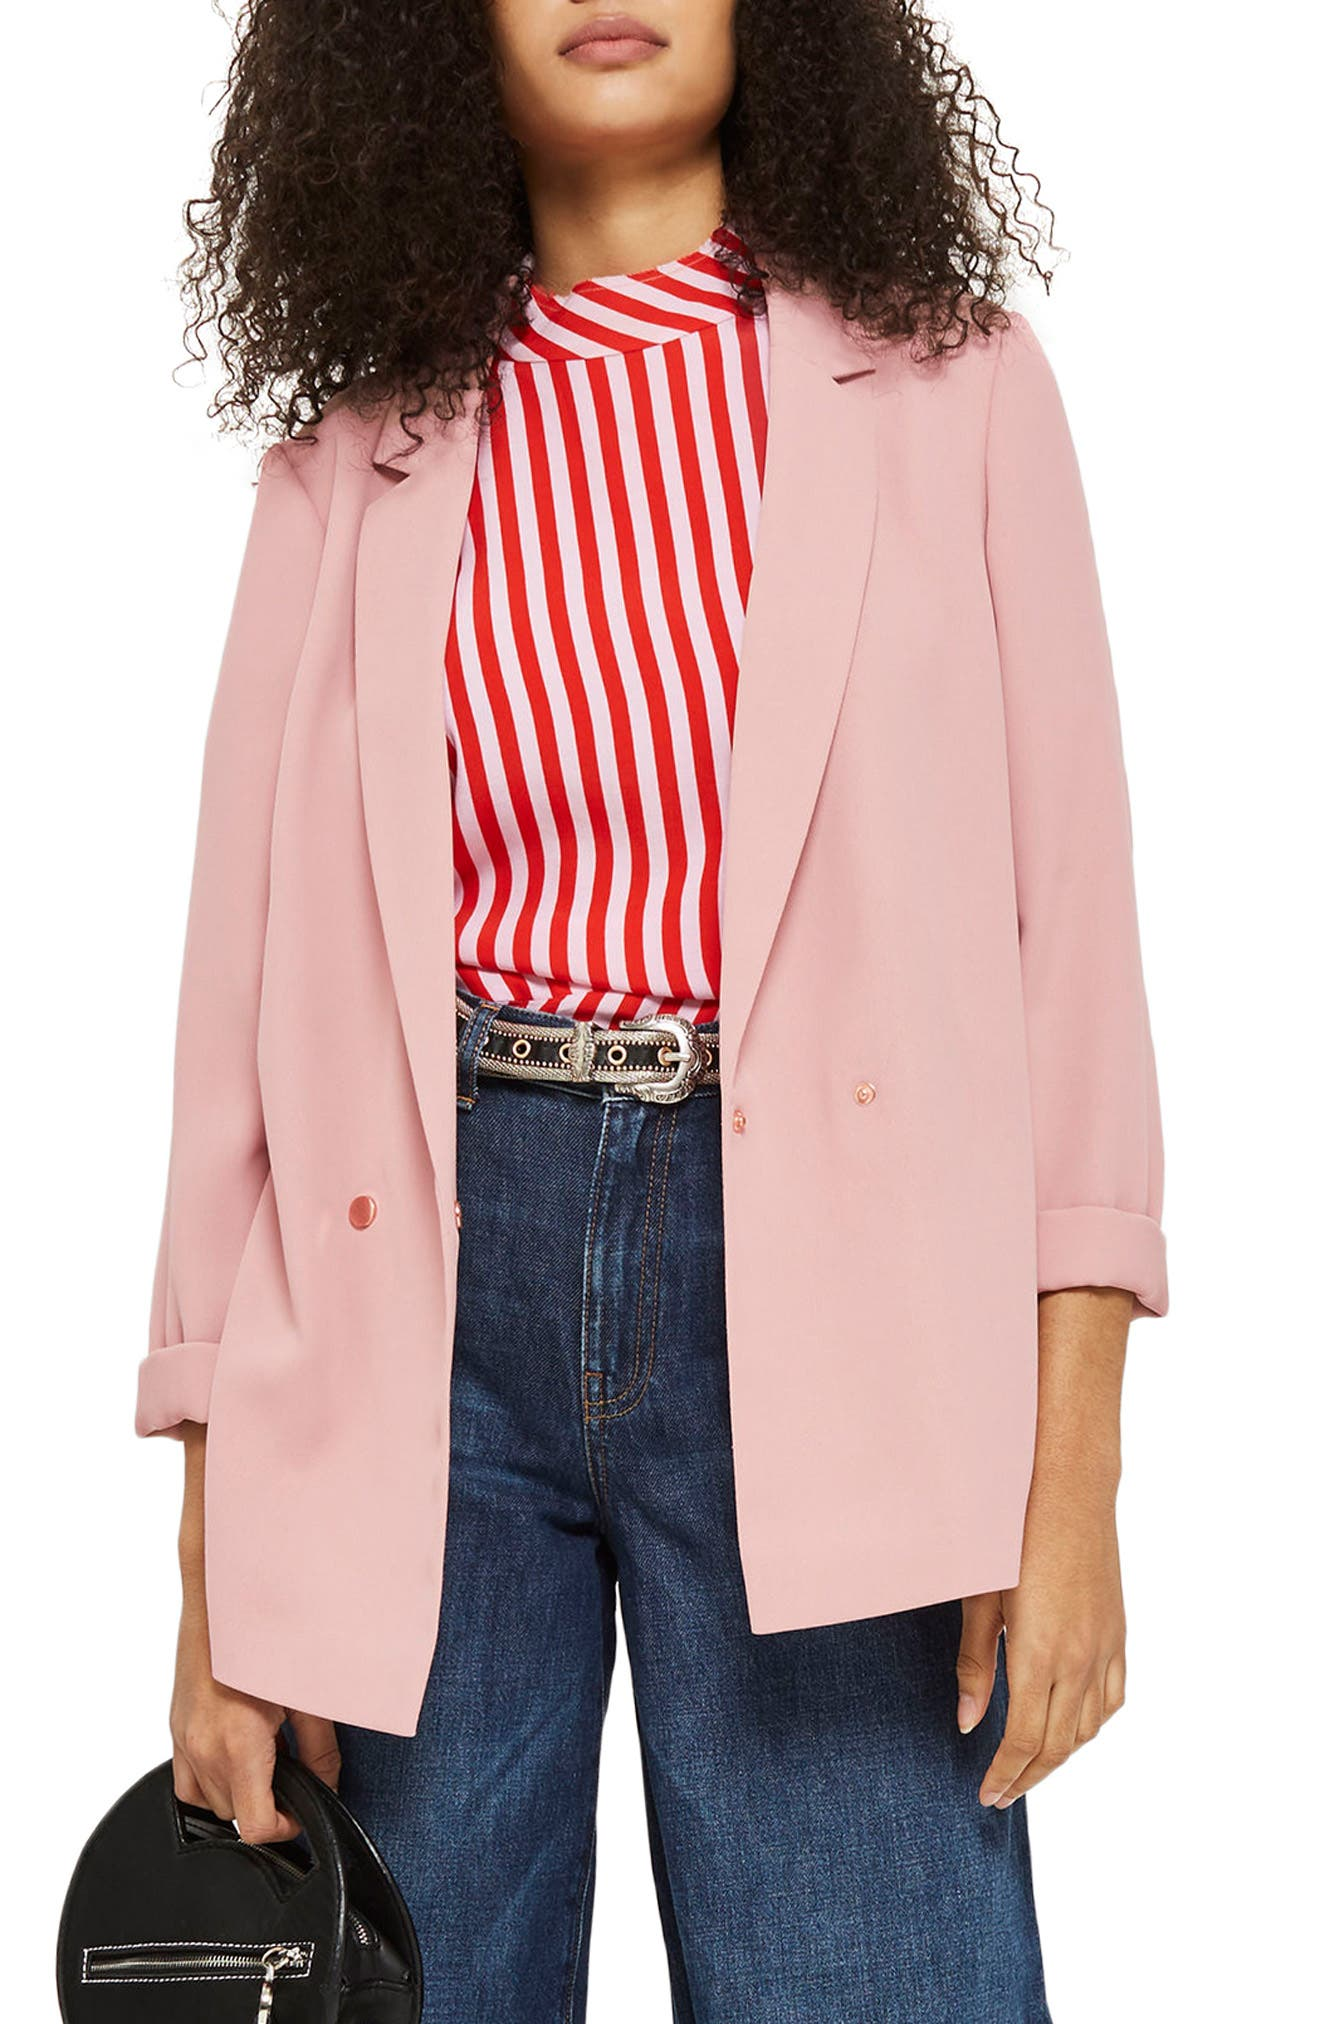 Topshop Ava Double Breasted Jacket